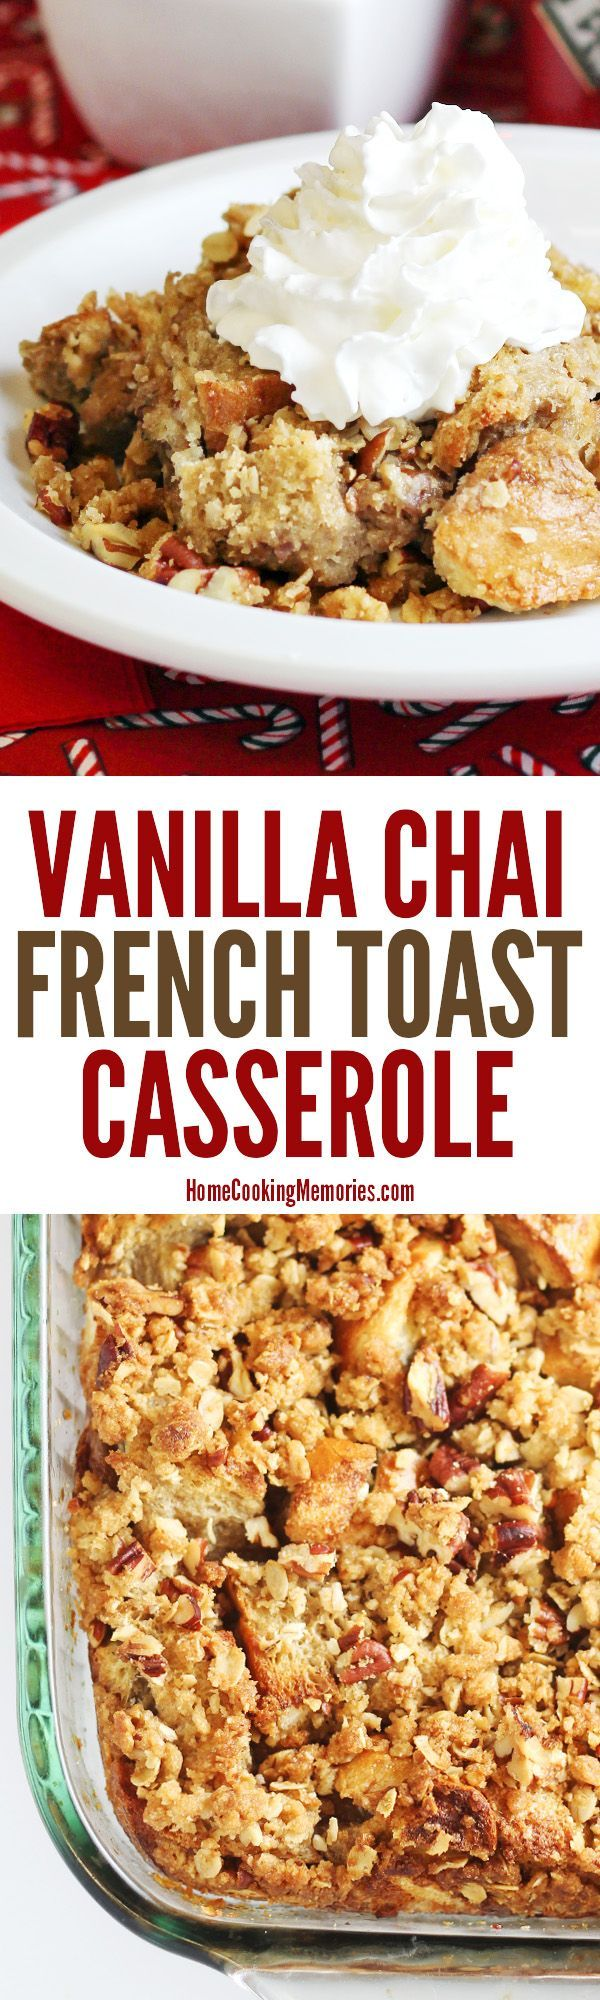 Overnight Vanilla Chai French Toast Bake Recipe - this easy casserole uses vanilla chai tea bags for its awesome flavor! Make it the night before and serve for special occasions or a holiday breakfast or brunch.